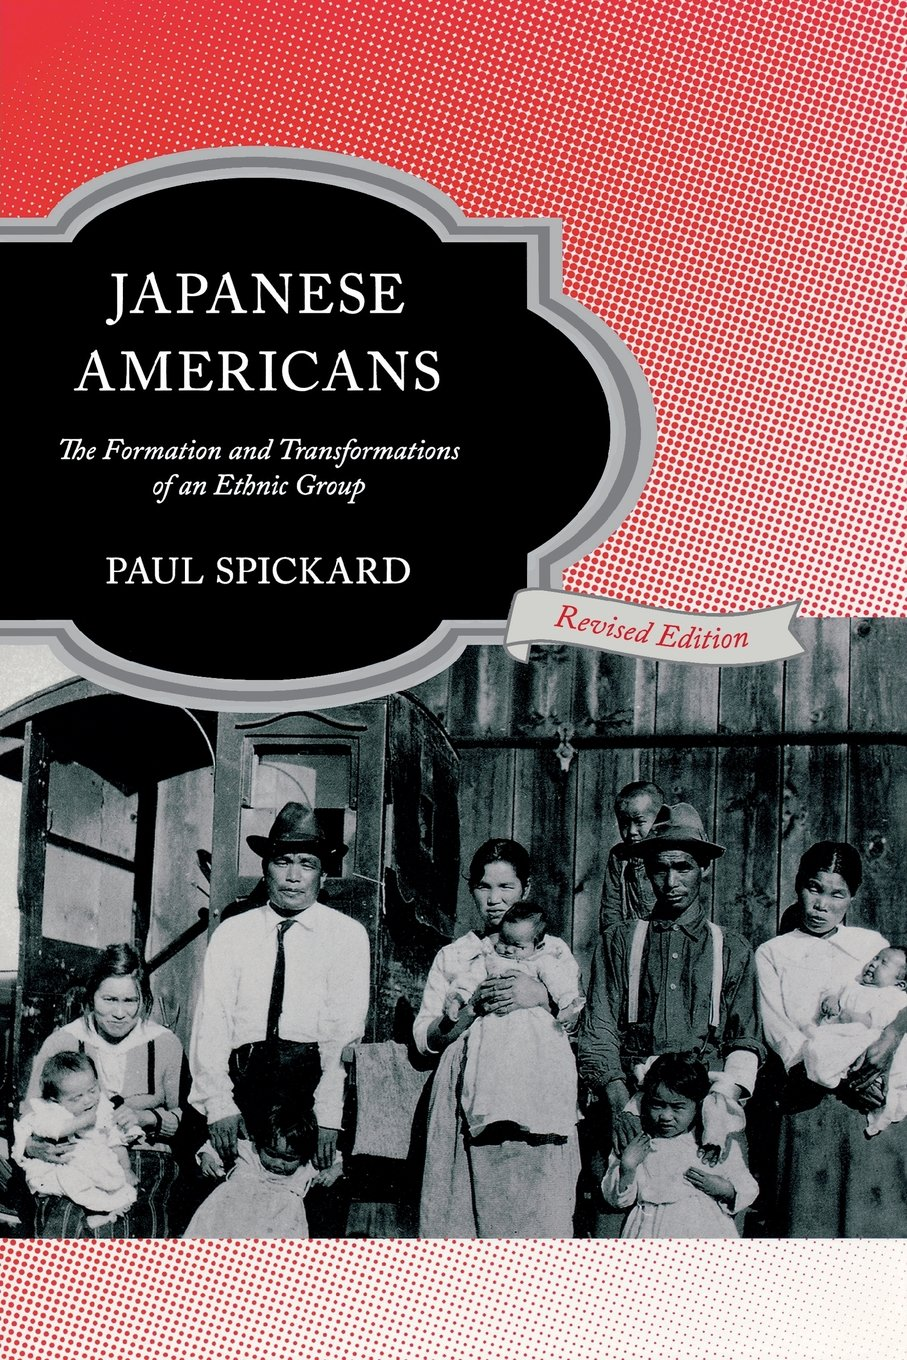 Japanese Americans : the Formation and Transformations of an Ethnic Group